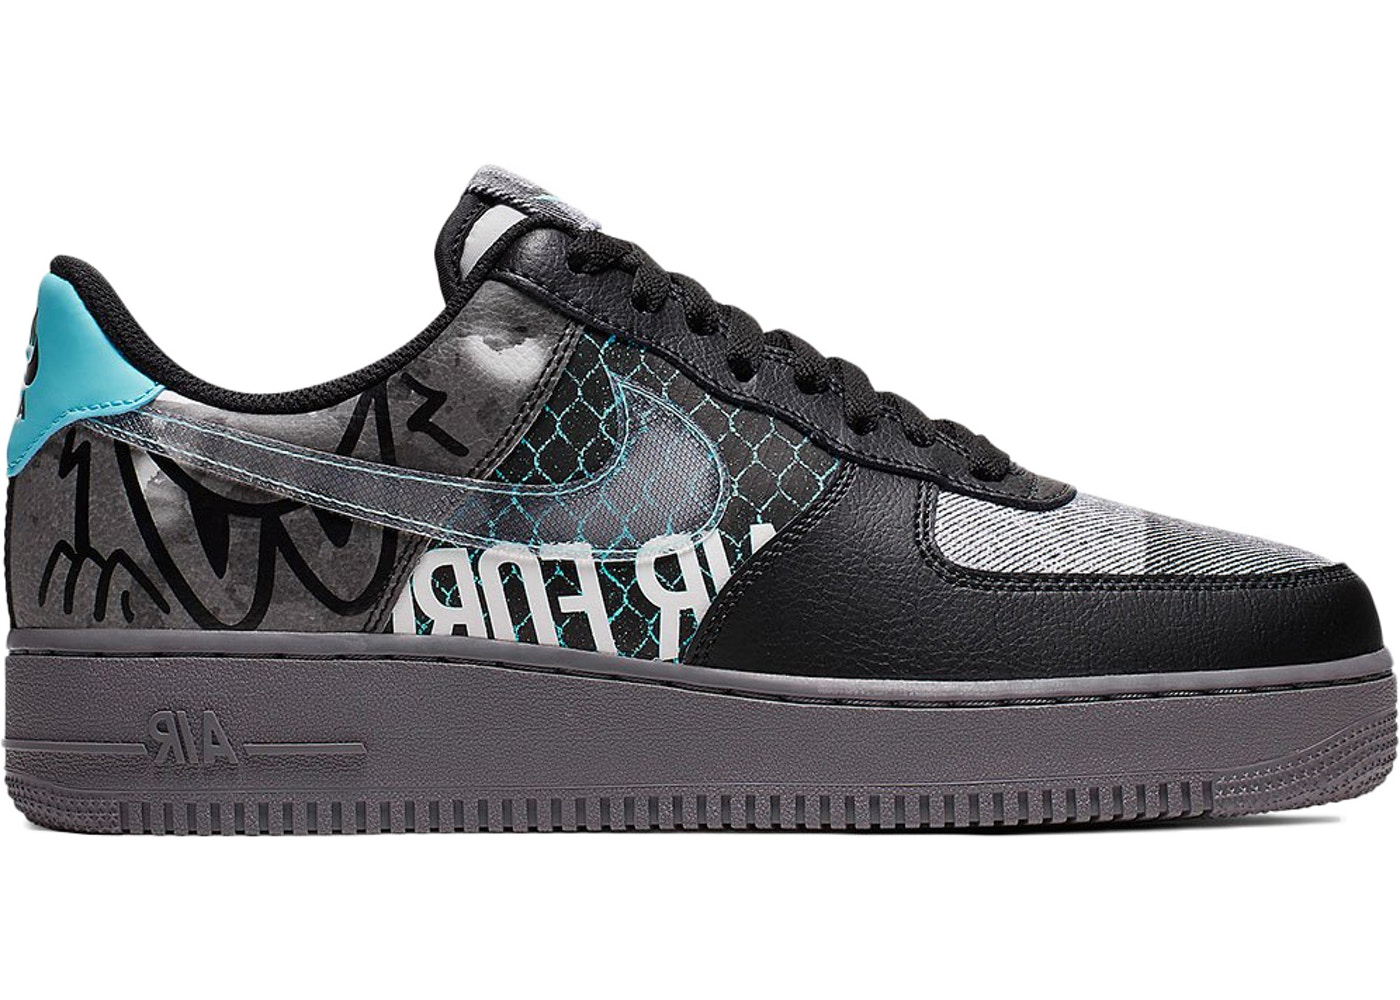 plus récent 44e31 18471 Buy Nike Air Force Shoes & Deadstock Sneakers